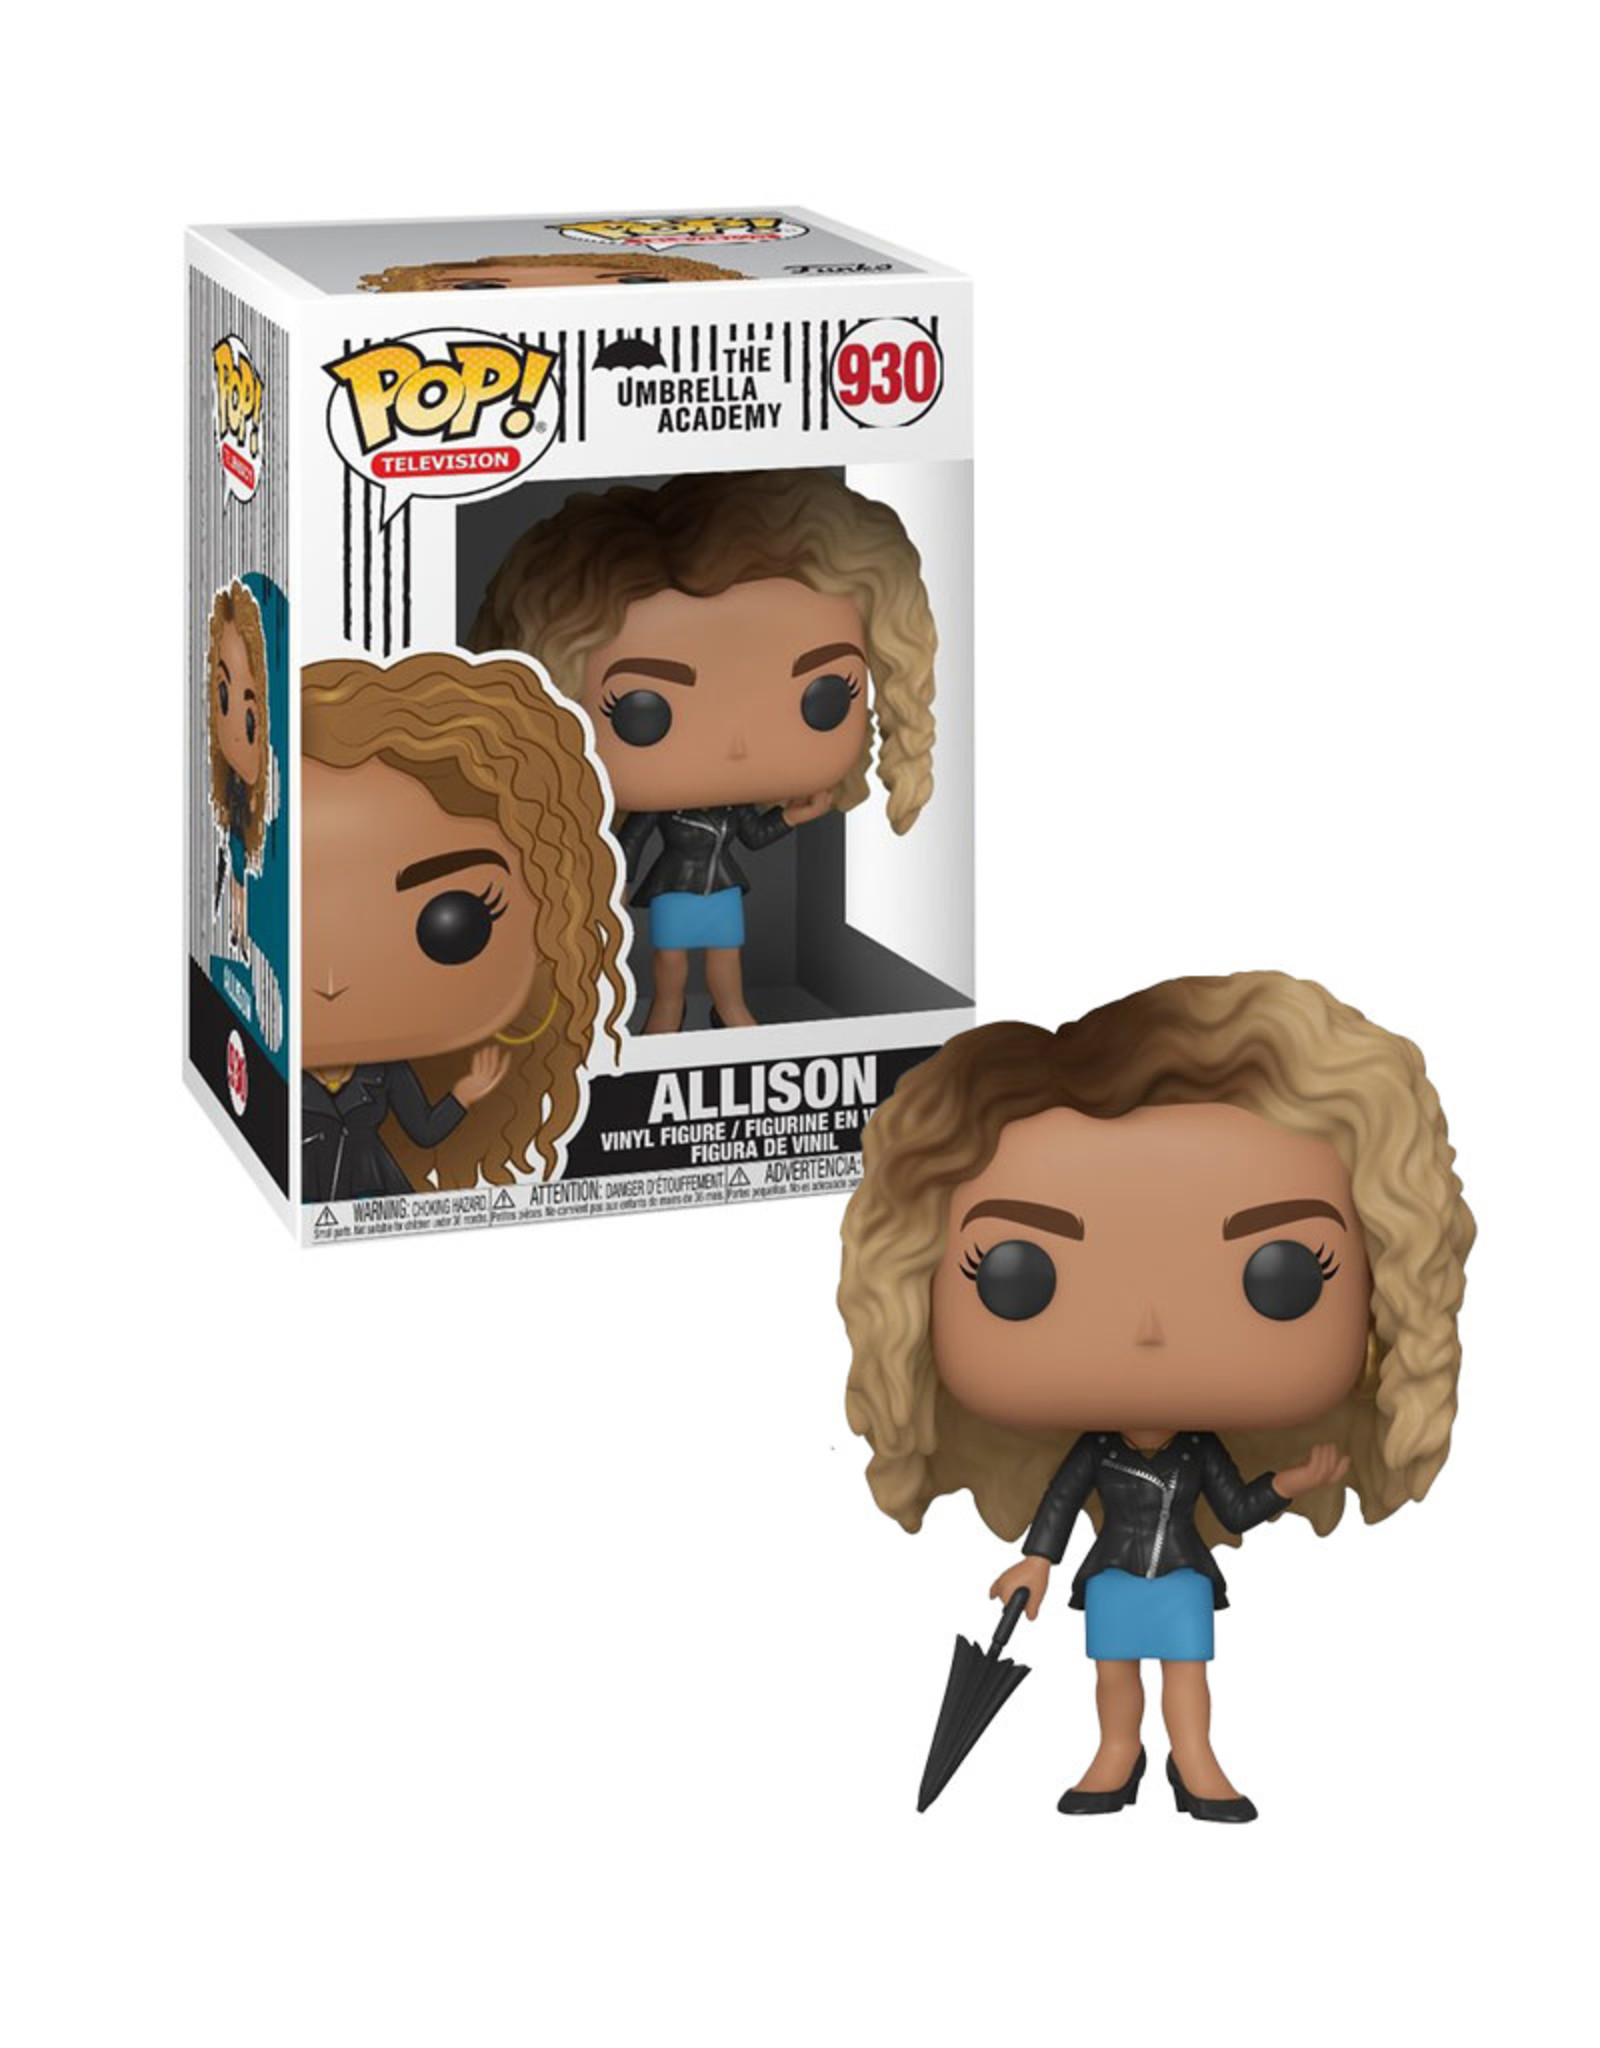 Allison 930 ( Funko Pop ) The Umbrella Academy